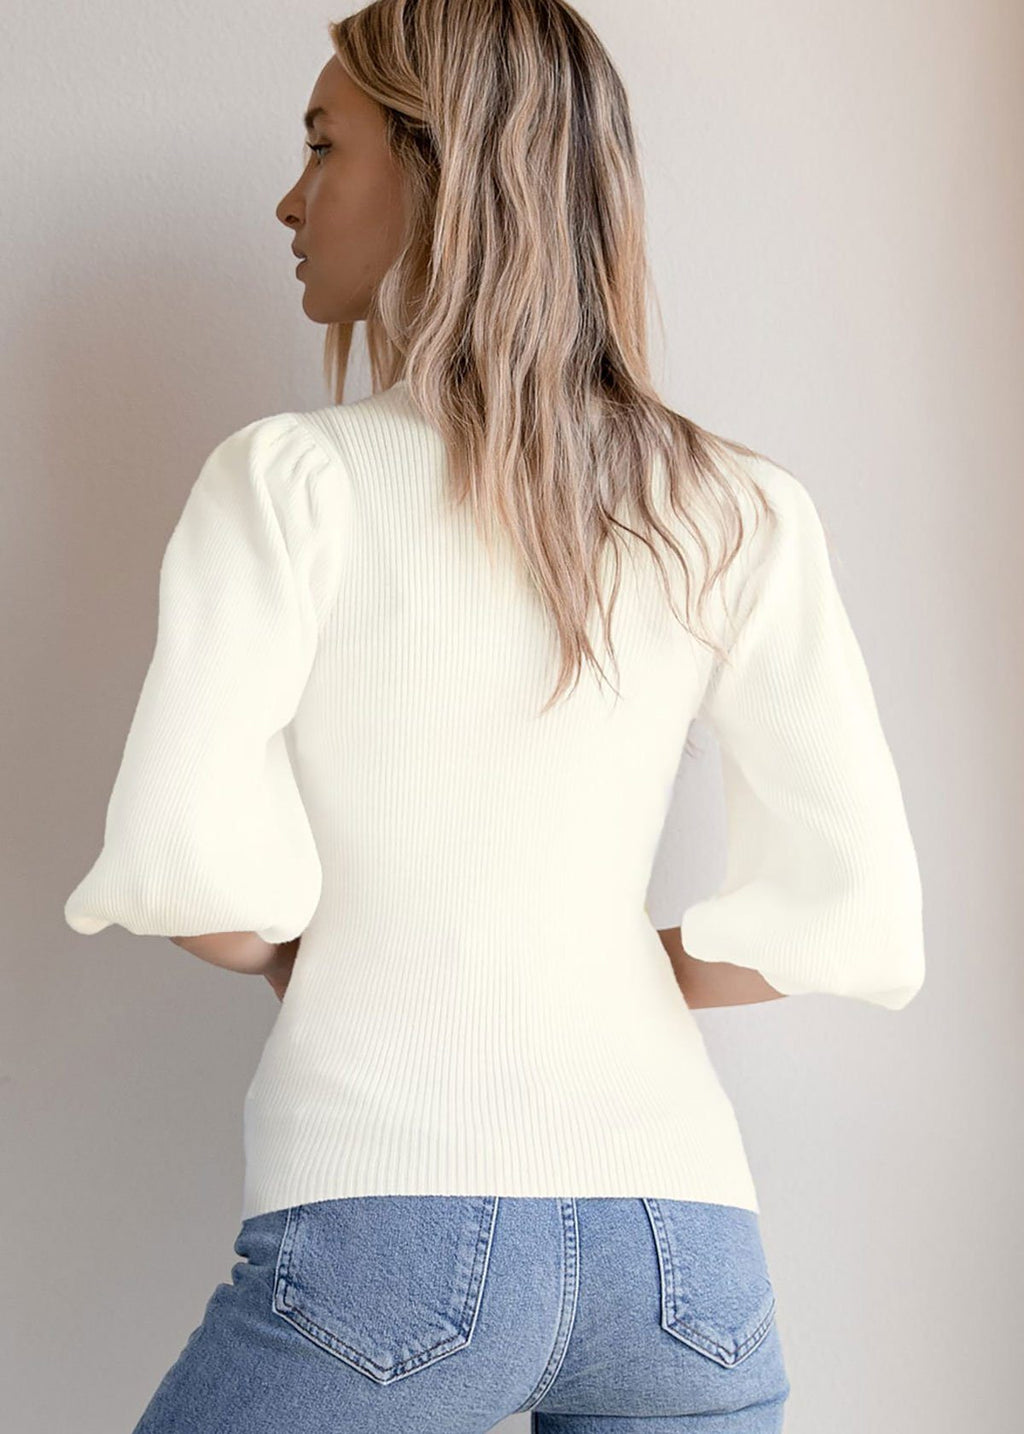 Birdie Ballon Sleeve Ribbed Sweater - White